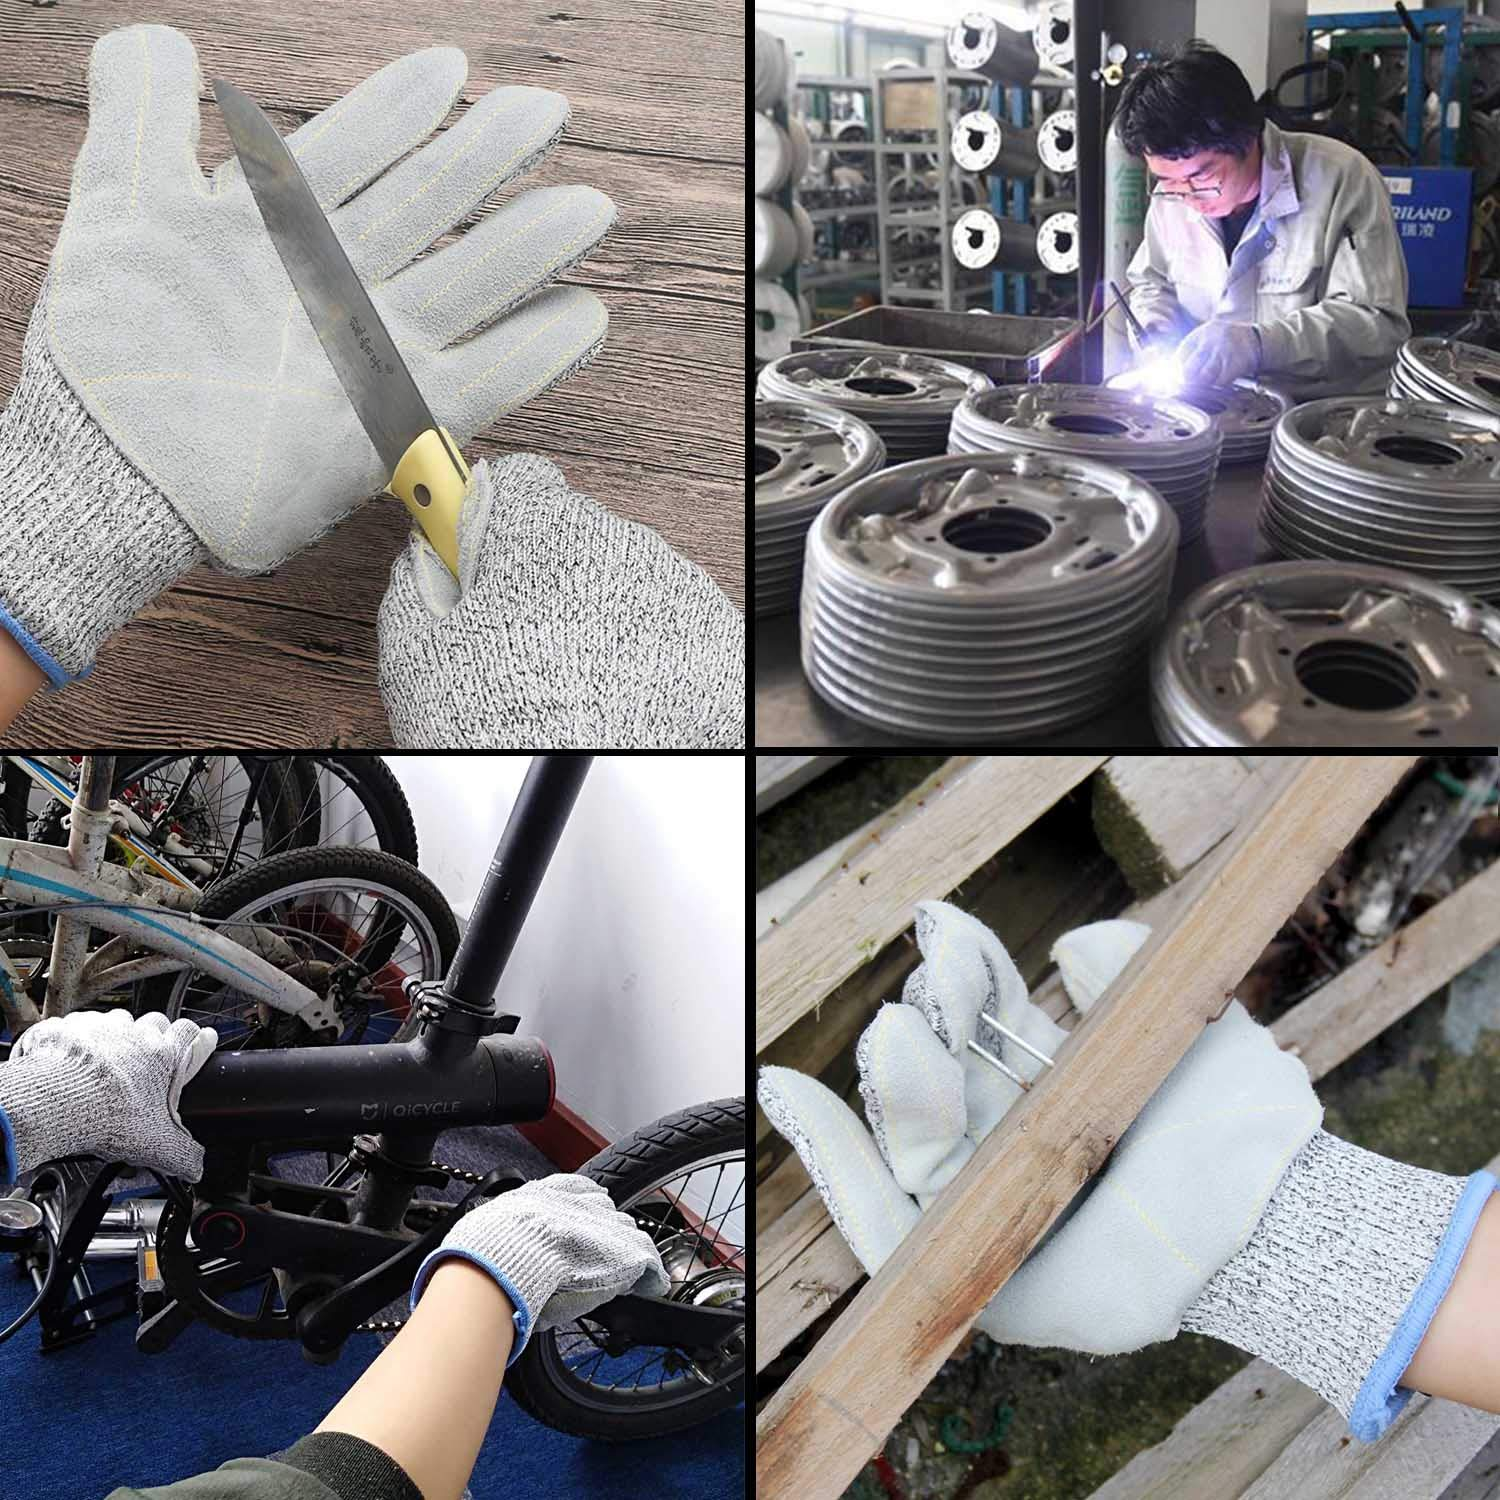 EnPoint Heavy Duty Mechanic Work Gloves 11cm// 4.3in Palm Width Split Leather Glove with Knitted Cuff Wrist Power Grip for Motorcycle Repairing Welding Gardening Construction Industrial Safety Gloves